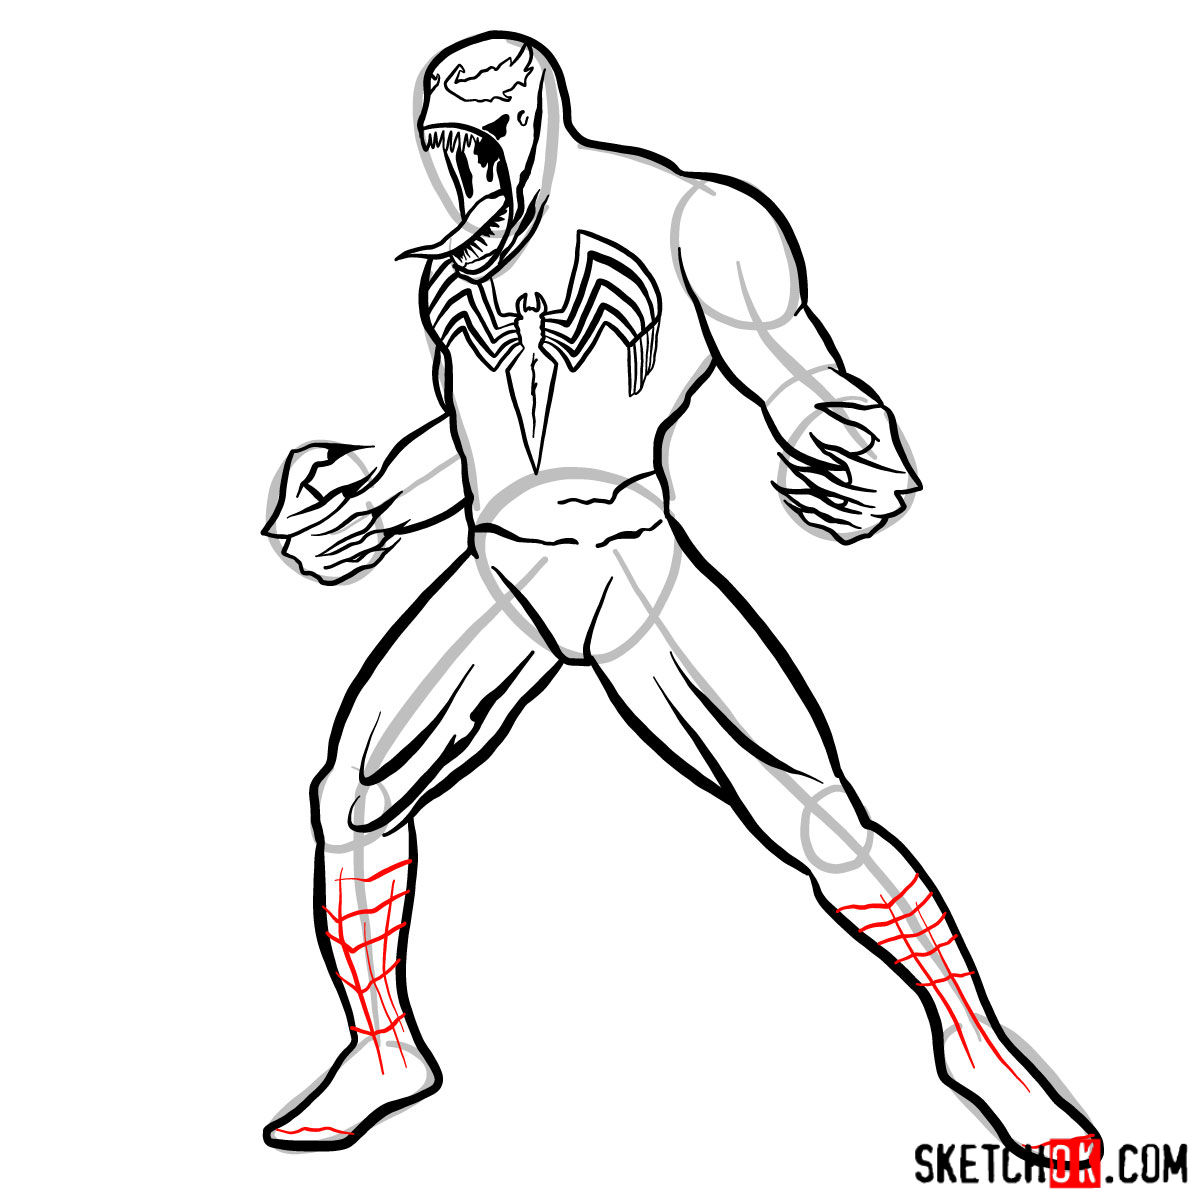 How to draw Venom symbiote step by step - step 11